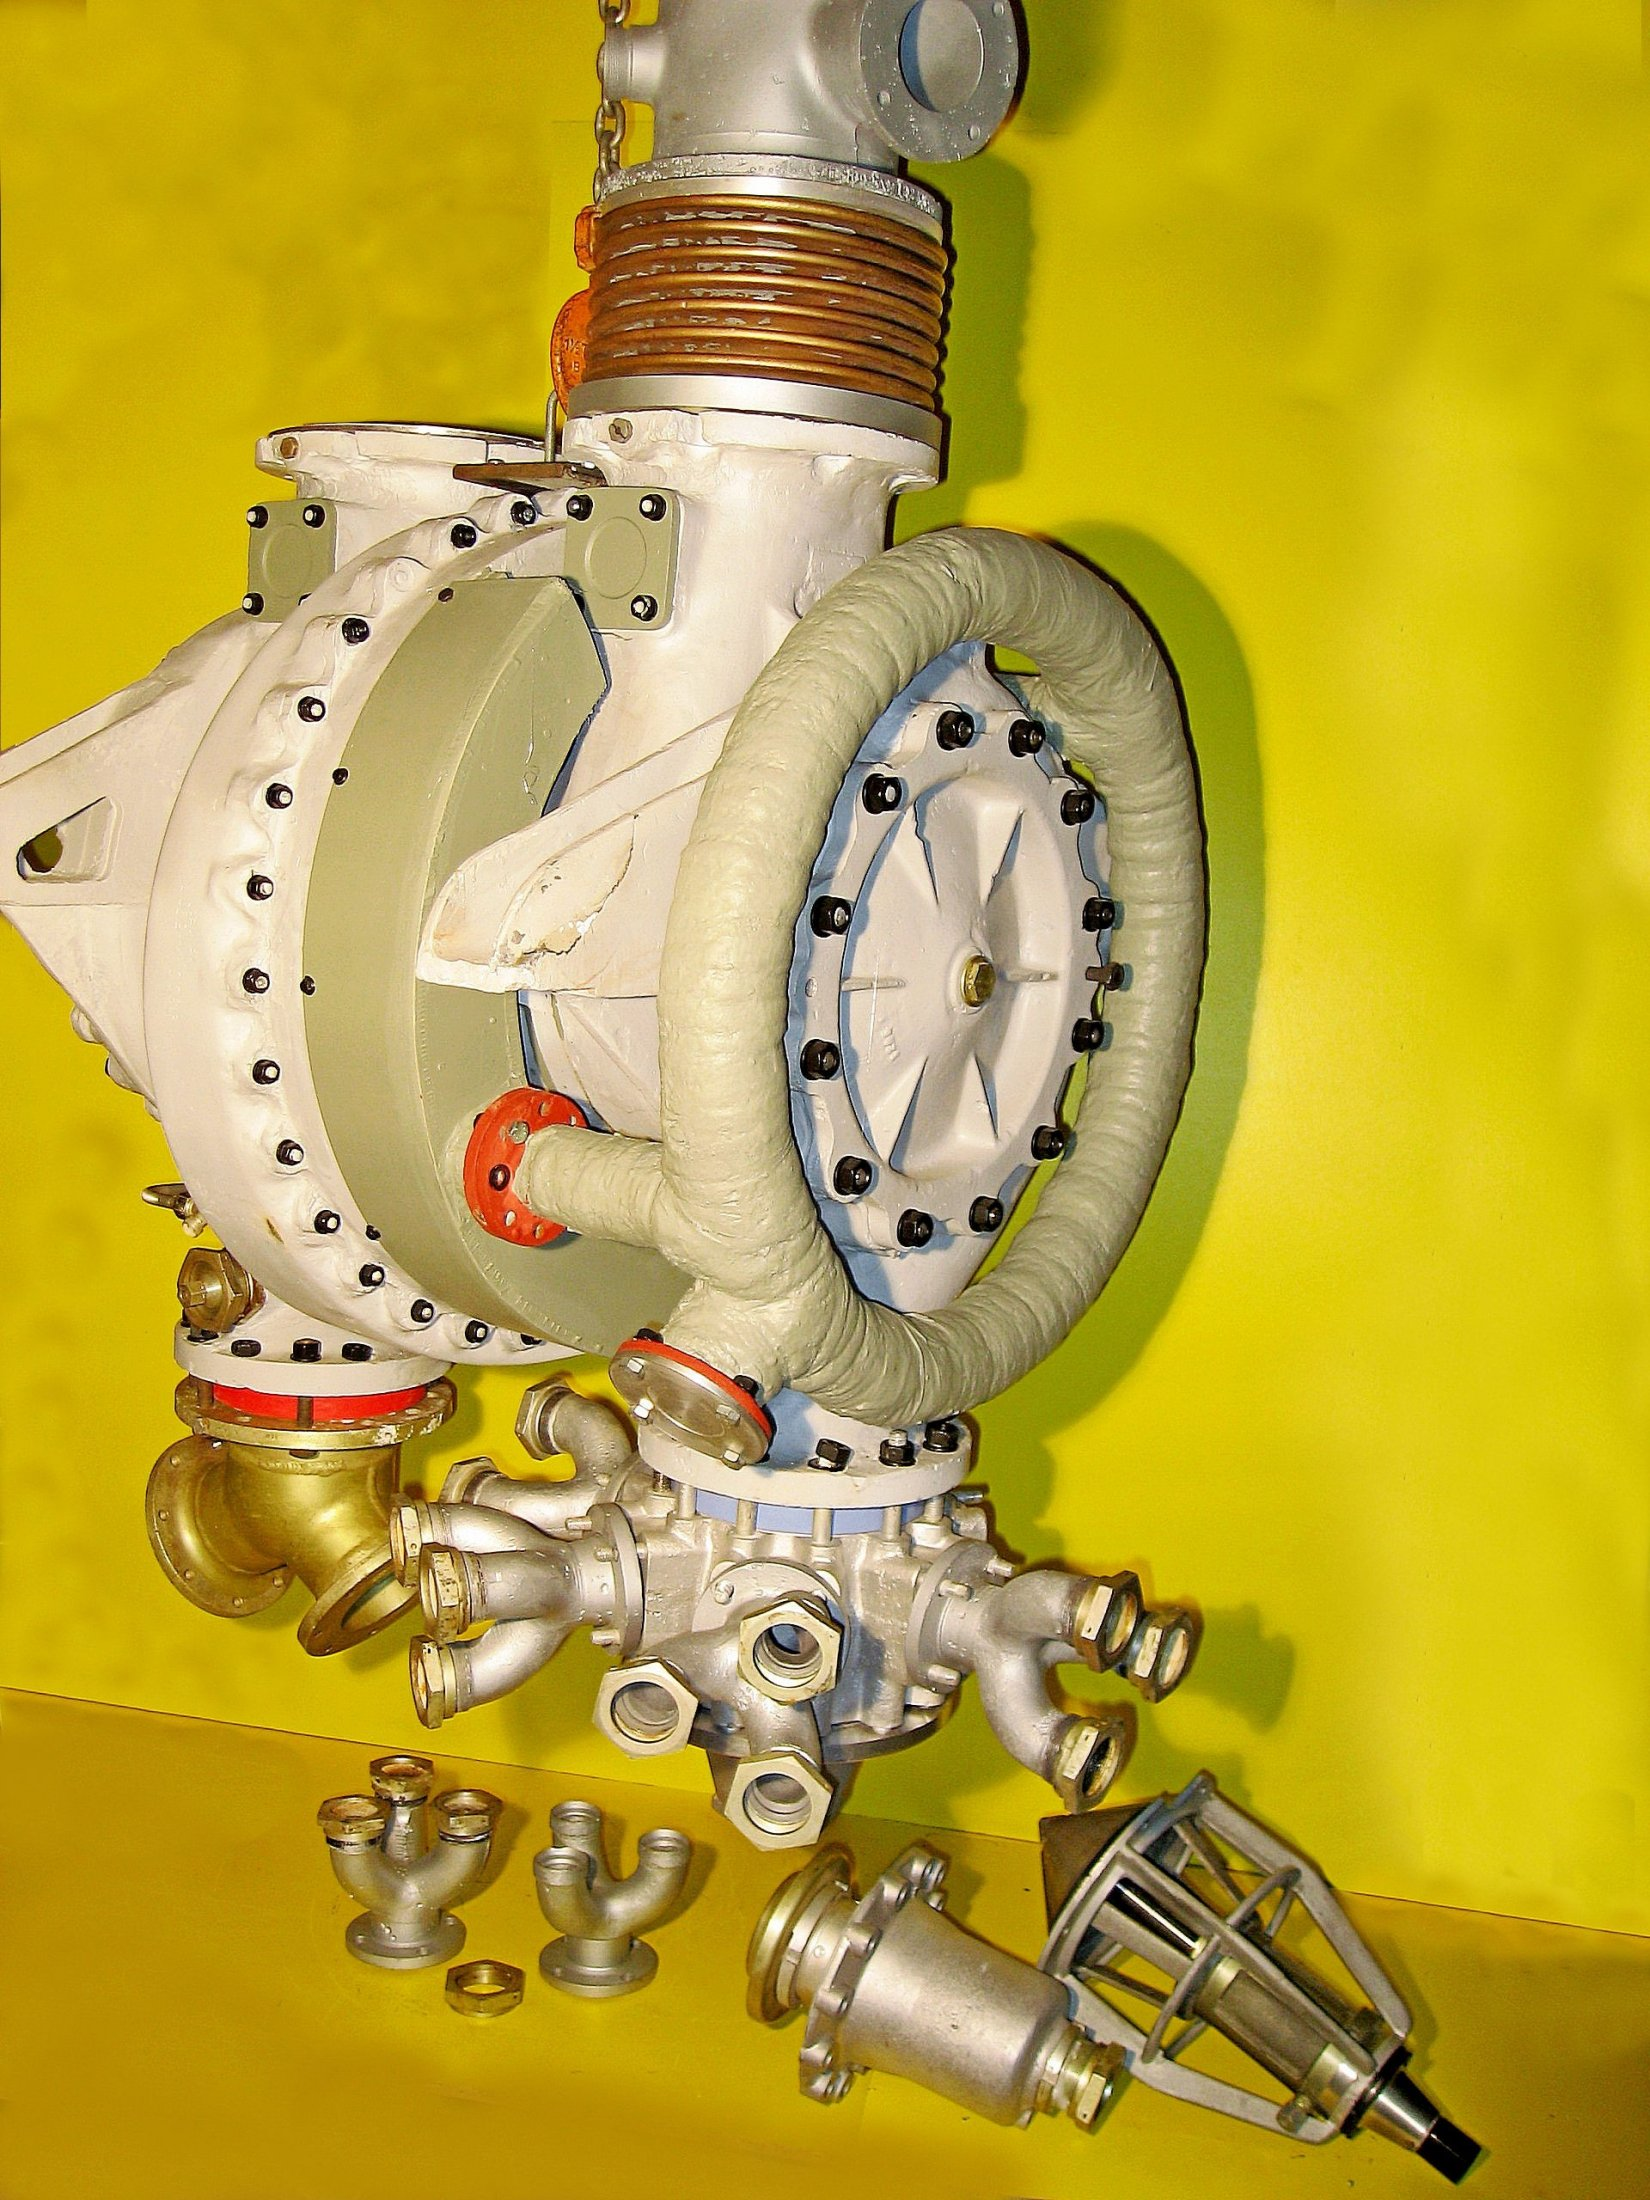 A4-V2 Turbo-pump showing LOX outlet manifold. ©THBC